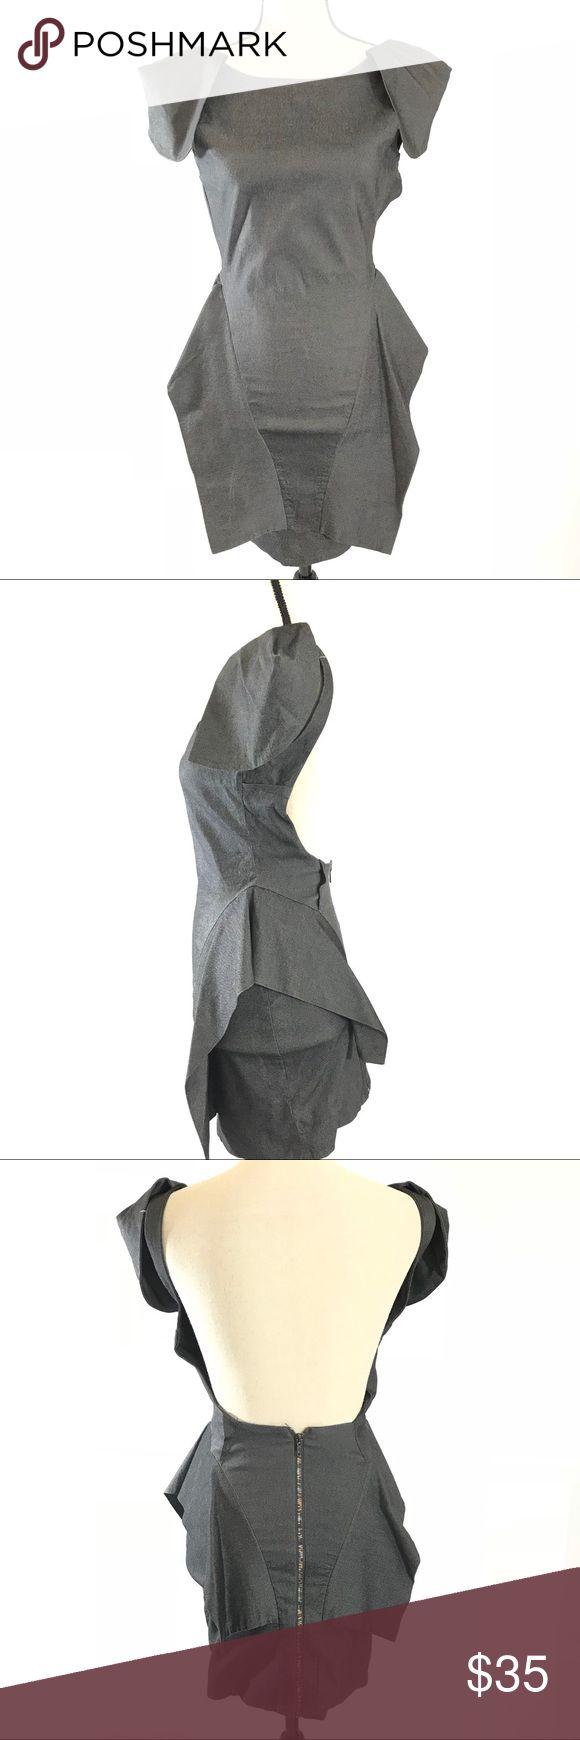 Caribbean Queen Open Back Dress New Without Tags Caribbean Queen open back Dress features back zip closure with cap sleeves. Color: Gray. Caribbean Queen Dresses